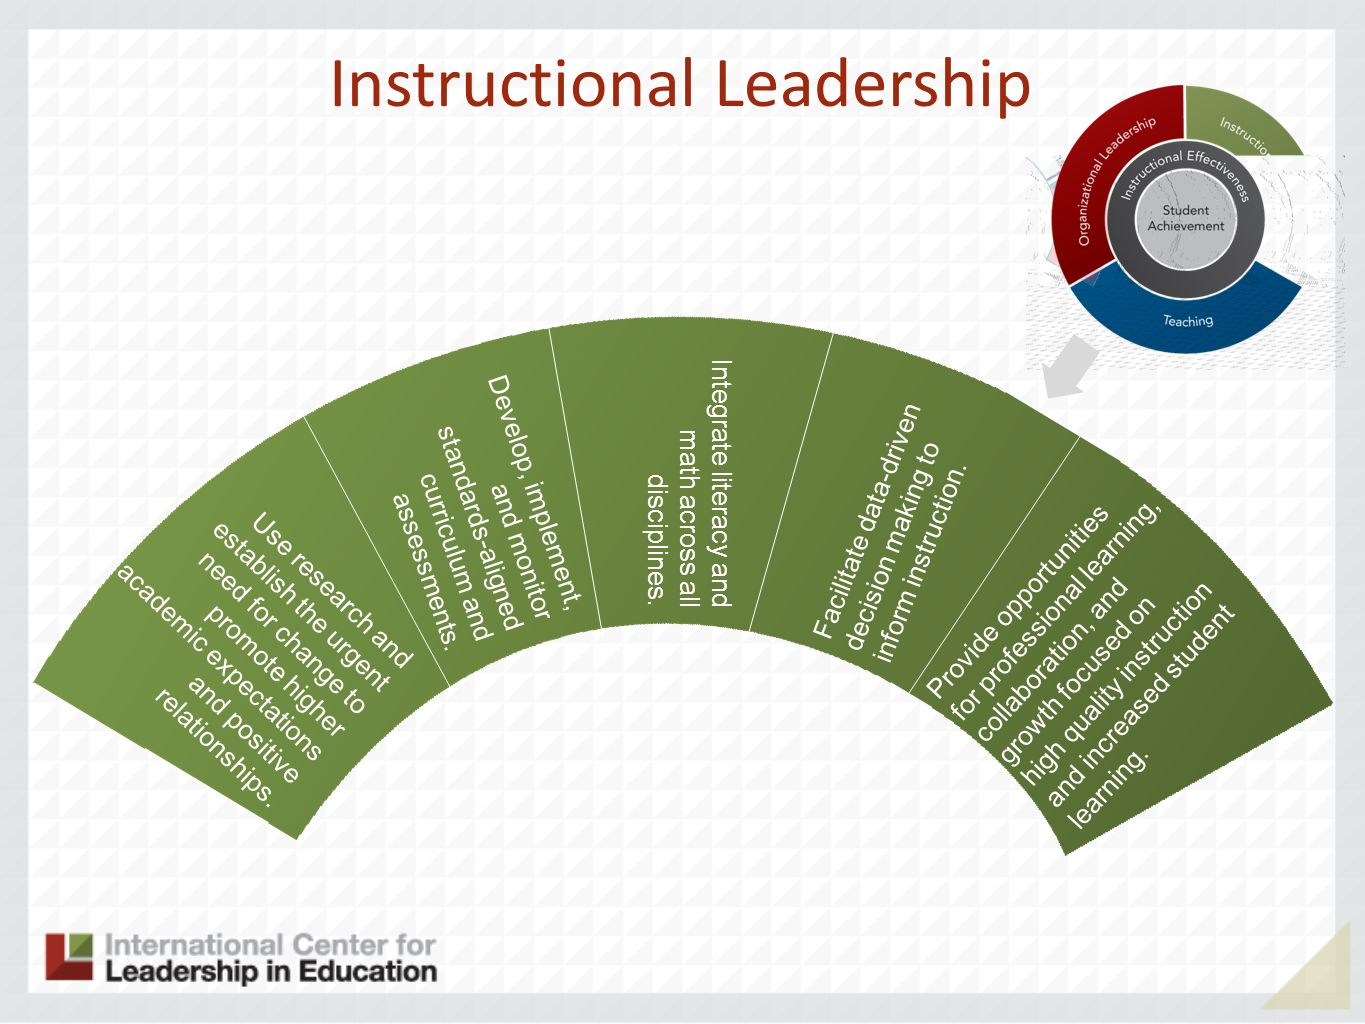 Instructional Leadership Use research and establish the urgent need for change to promote higher academic expectations and positive relationships. Dev